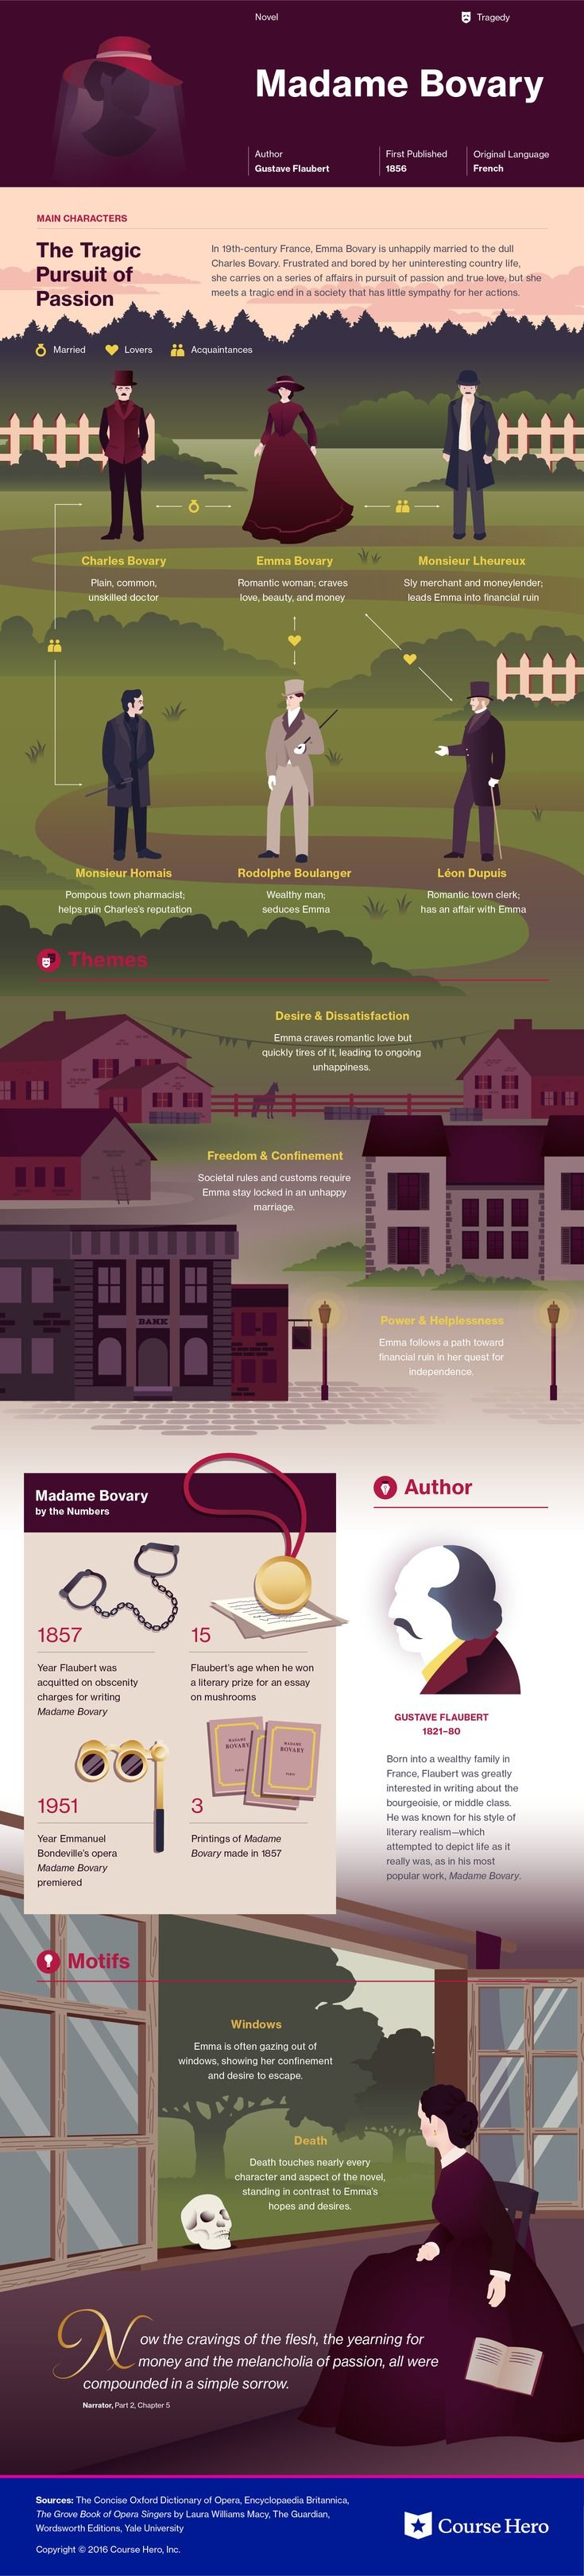 images about m bovary literatura the yellow this coursehero infographic on madame bovary is both visually stunning and informative